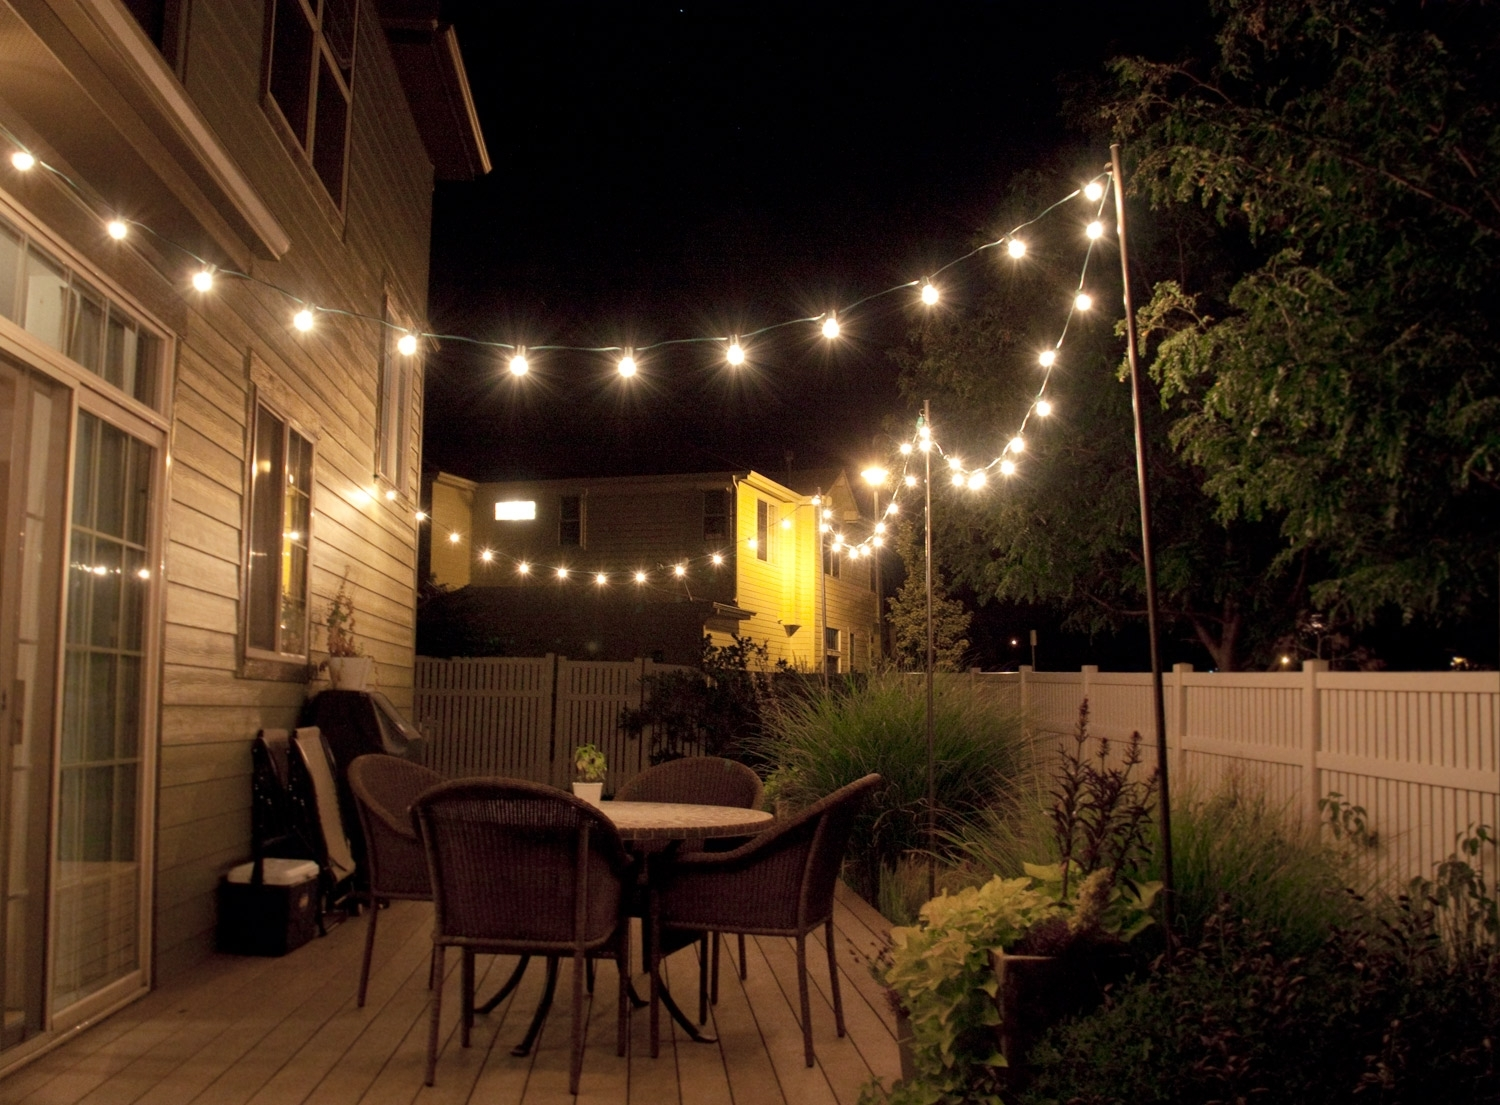 Inspiration about Diy : How Make Inexpensive Poles Hang String Lights Hanging Outdoor Pertaining To Hanging Outdoor Lights Without Nails (#4 of 15)